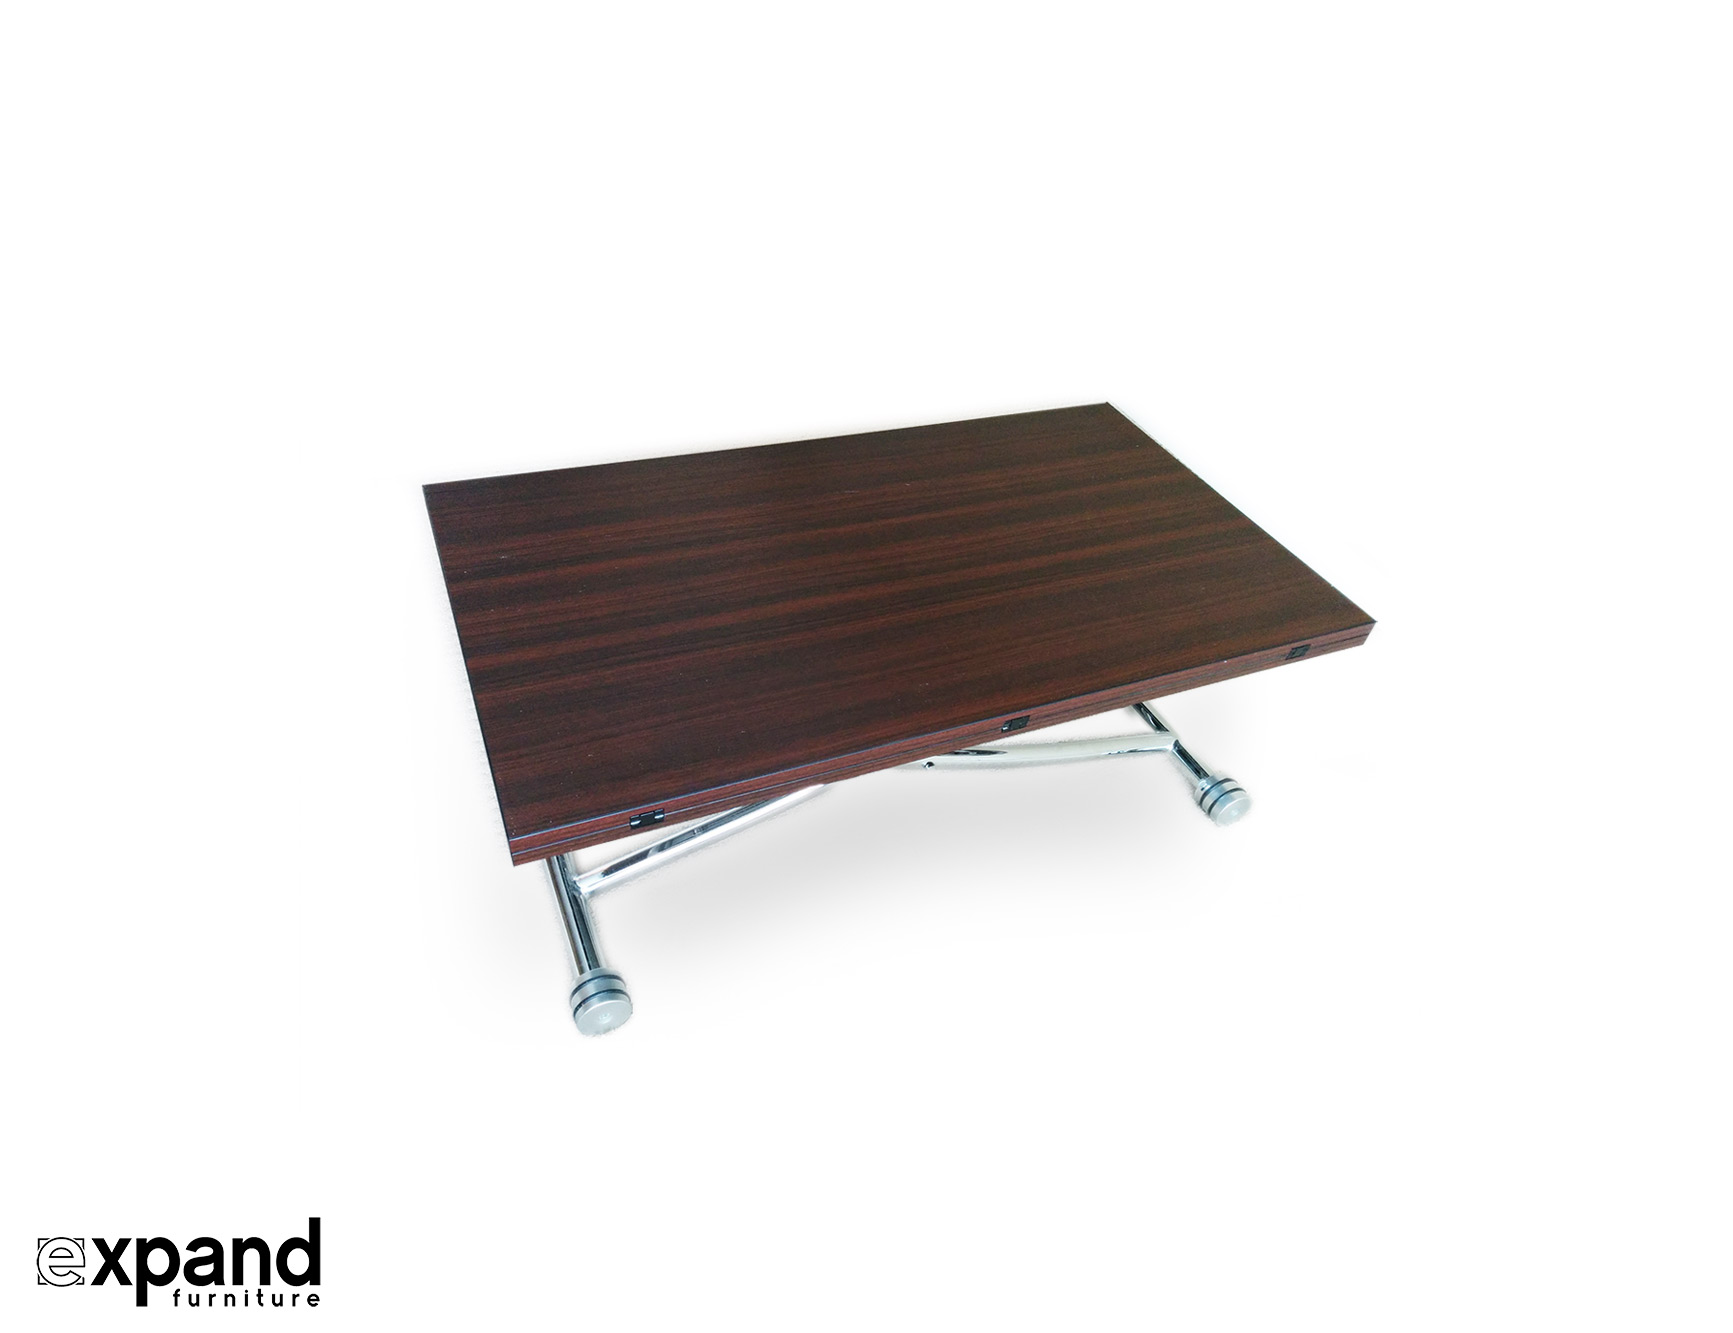 Space Saving Coffee Tables Transforming Space Saving Table Expand Furniture